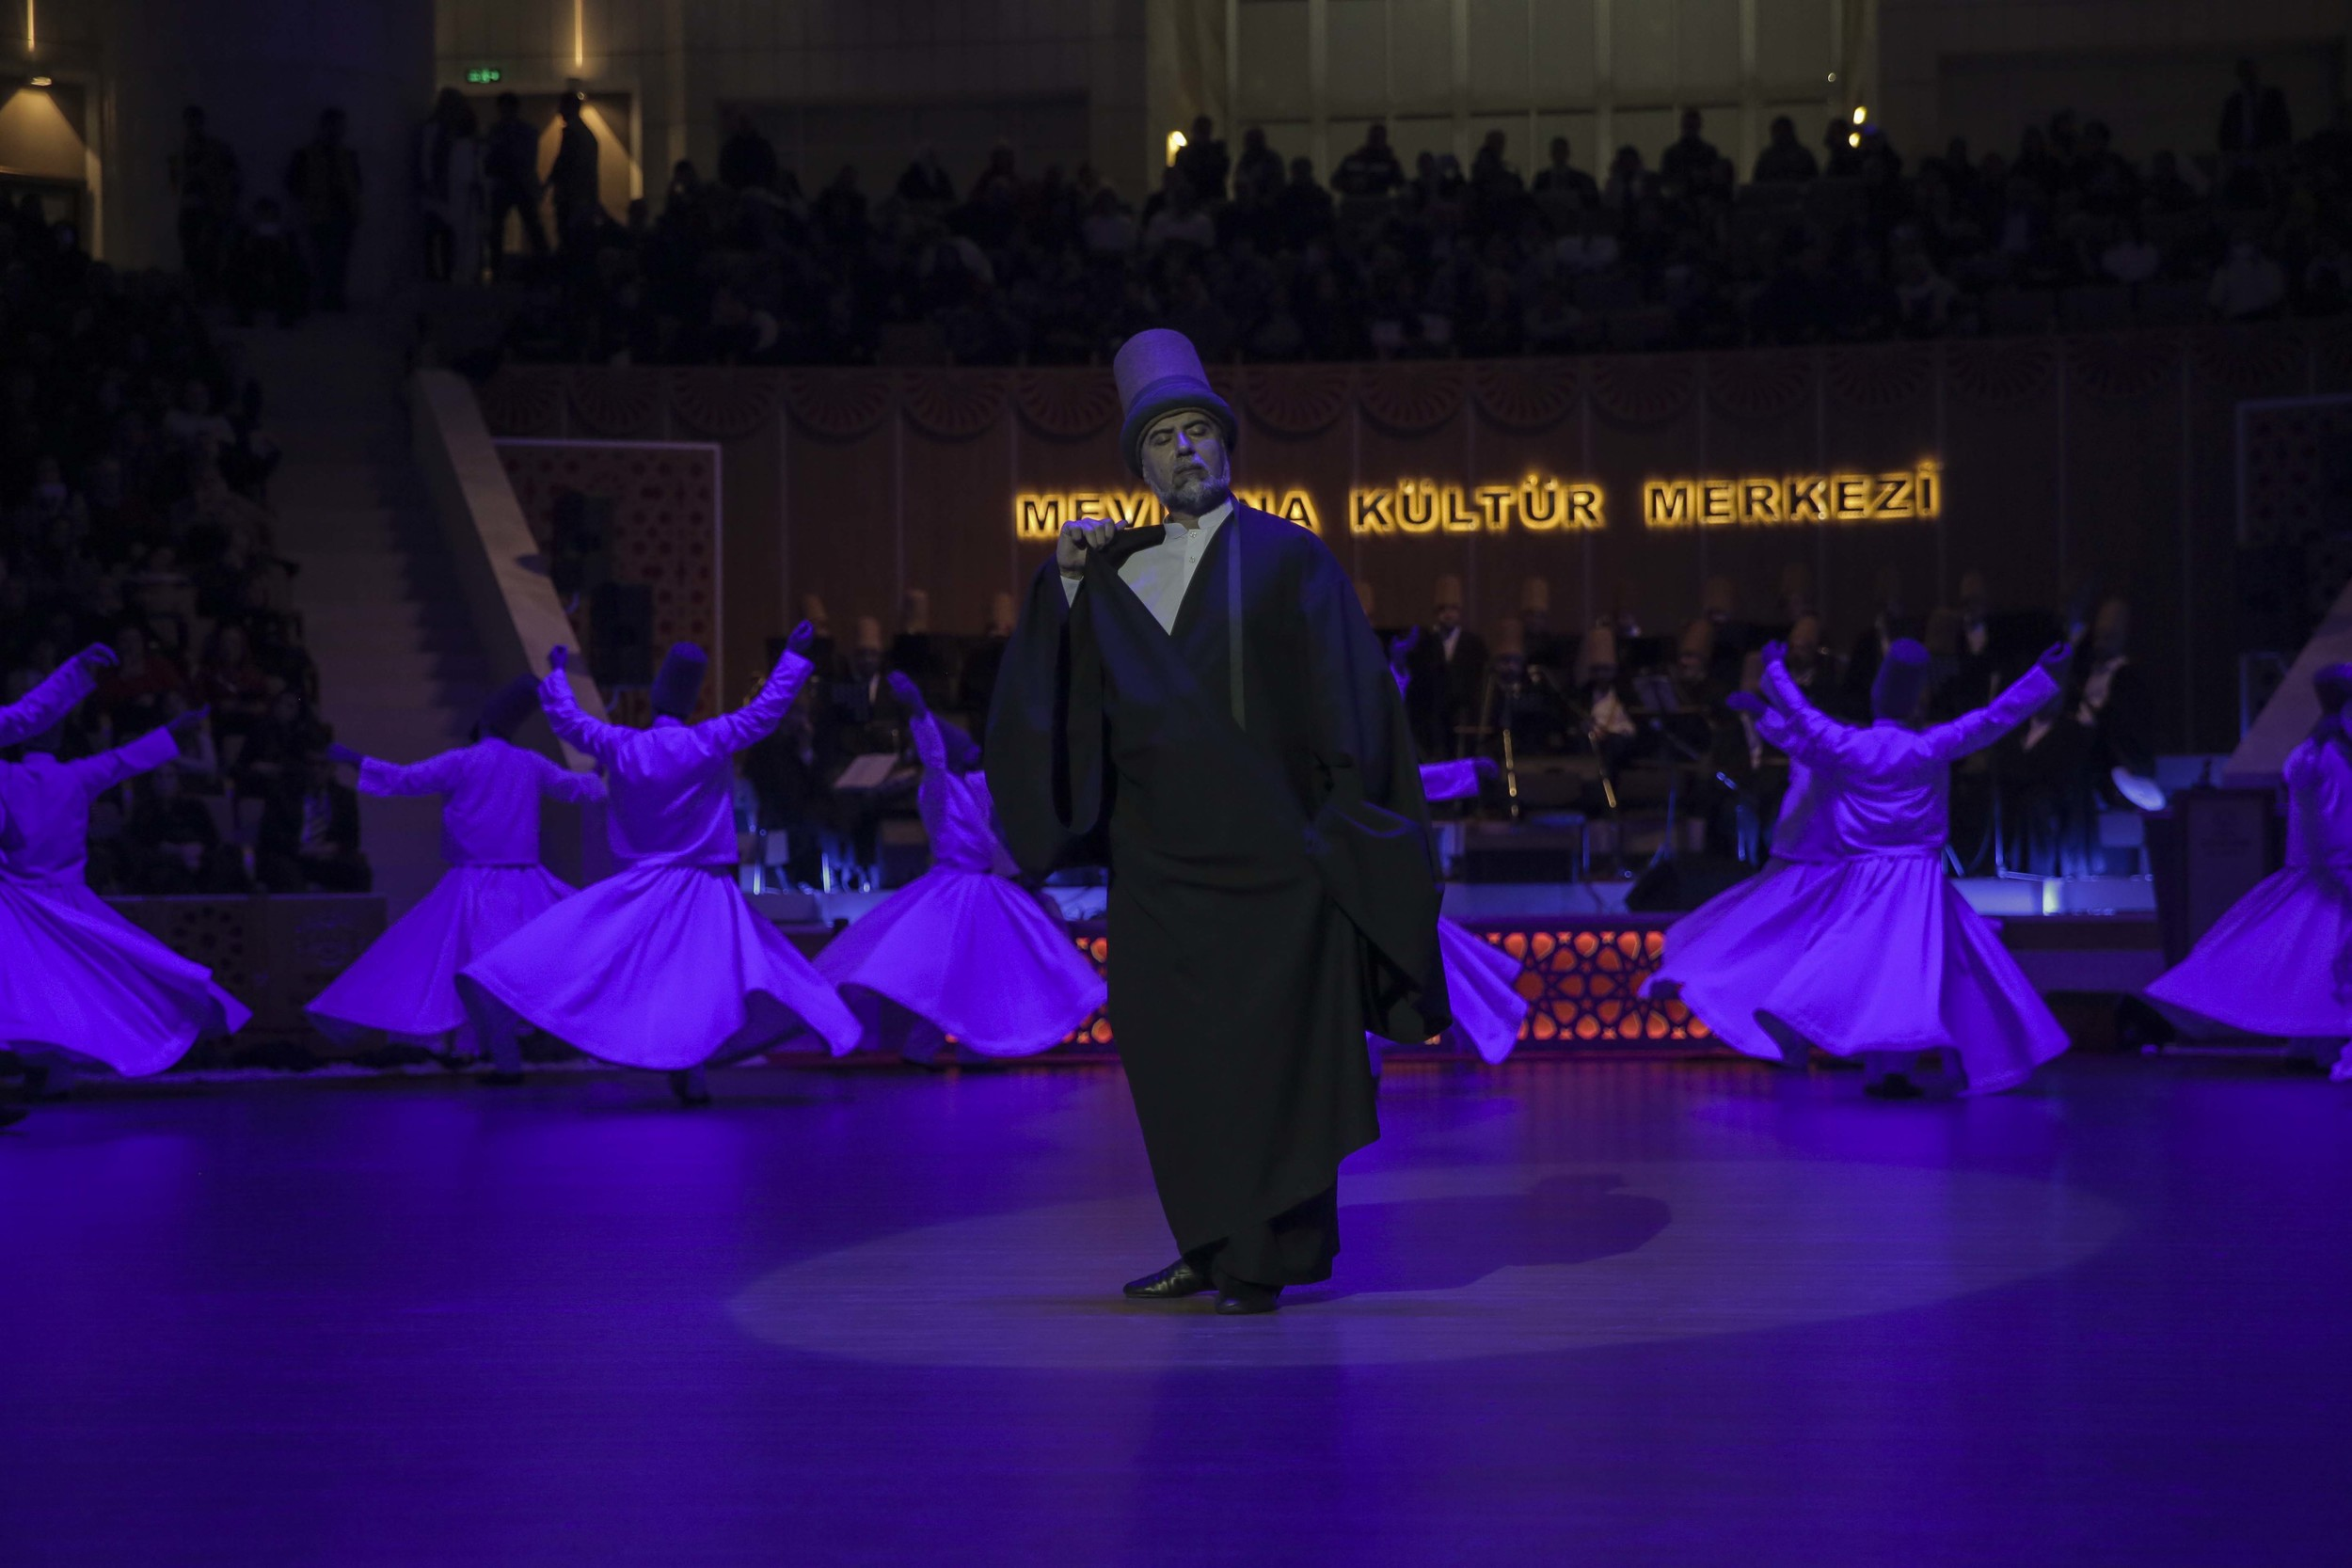 Fahri Ozcakil, the Dede – or head – of the whirling Dervishes and father of Mithat, gently turning in the centre of the other whirling dervishes